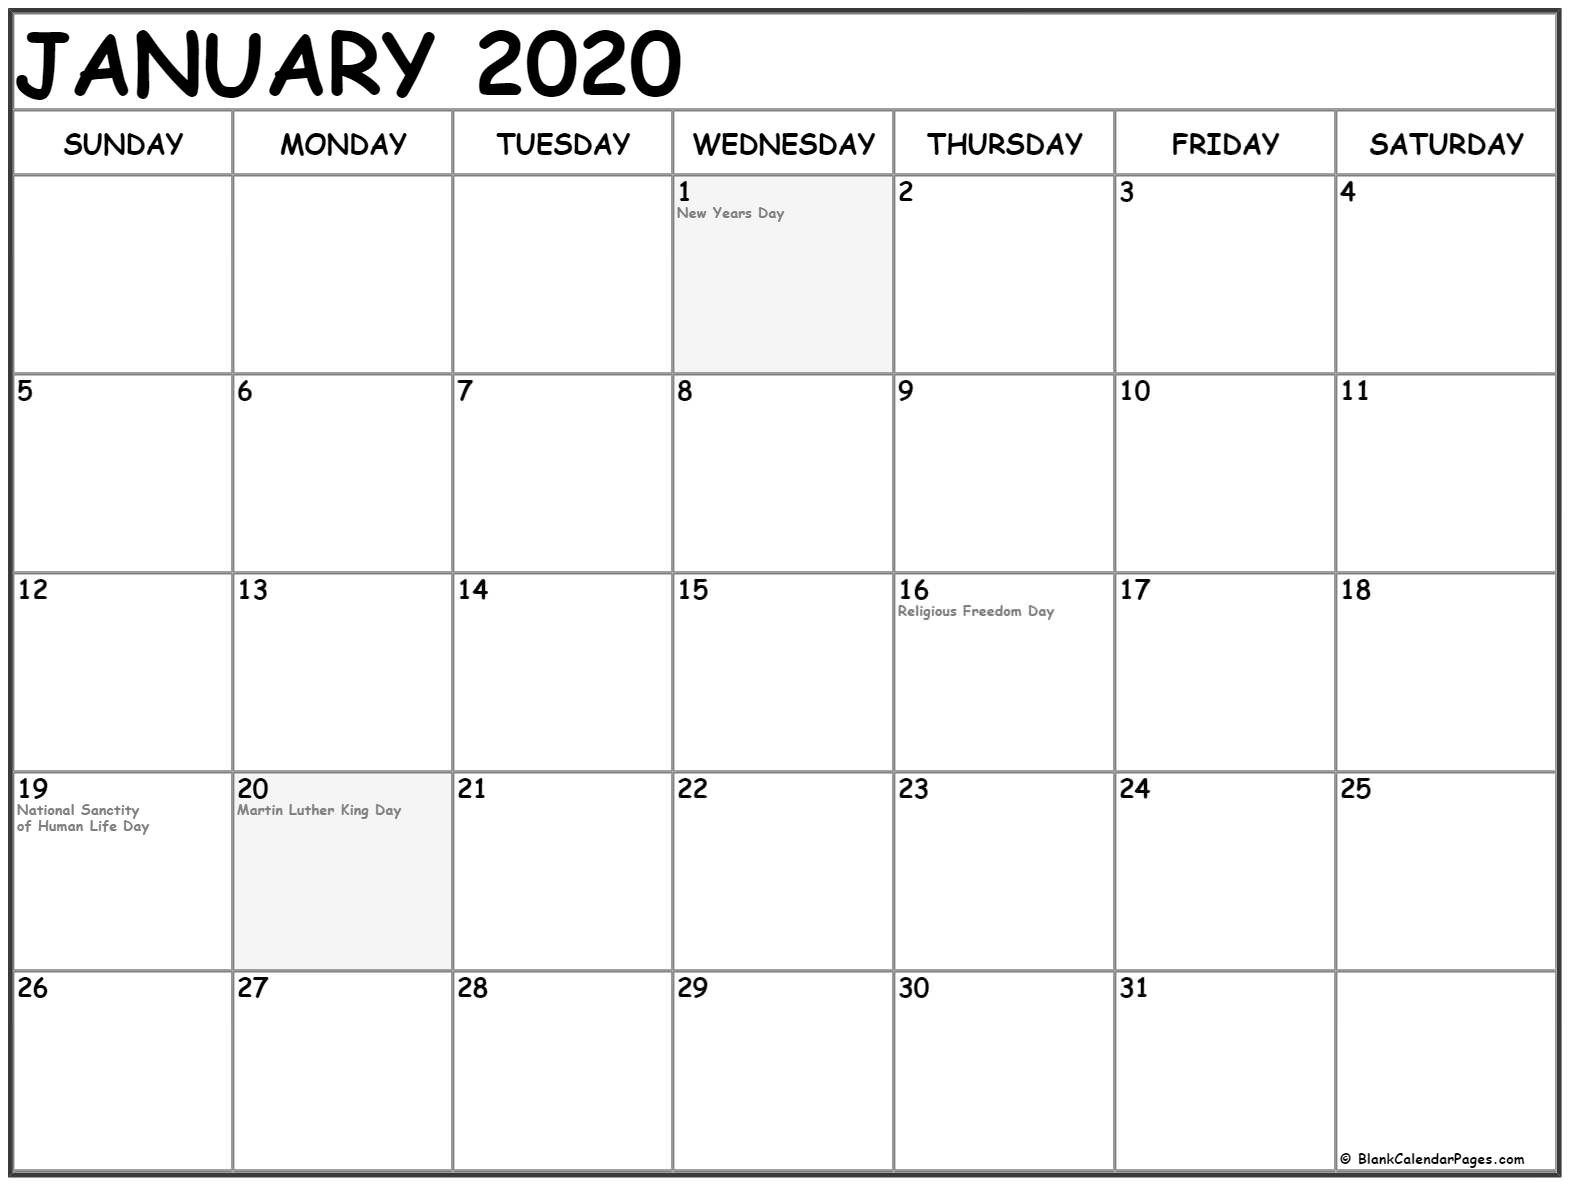 Collection Of January 2020 Calendars With Holidays-January 2020 Calendar Public Holidays